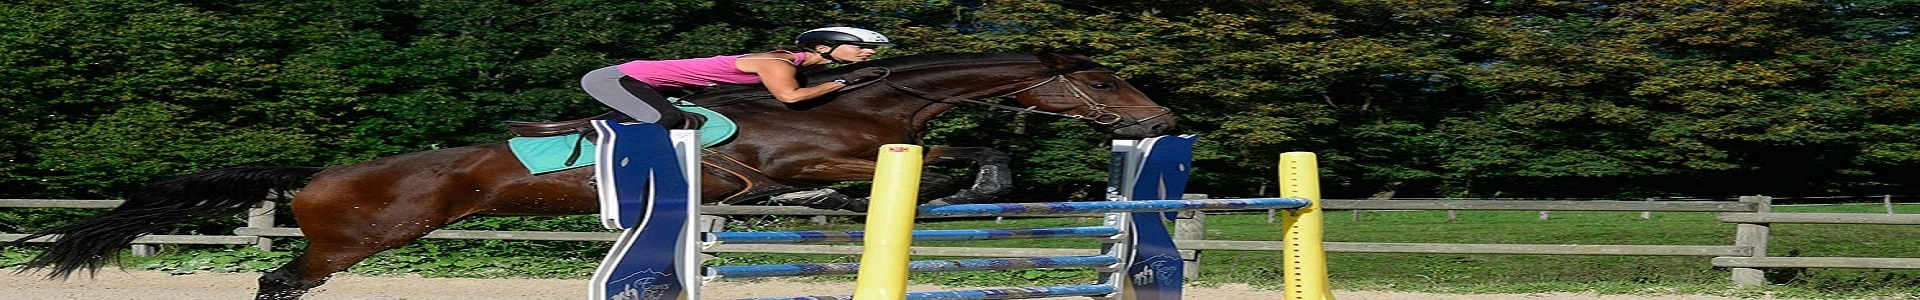 ExtraOffre Sport Banner Equitation Category